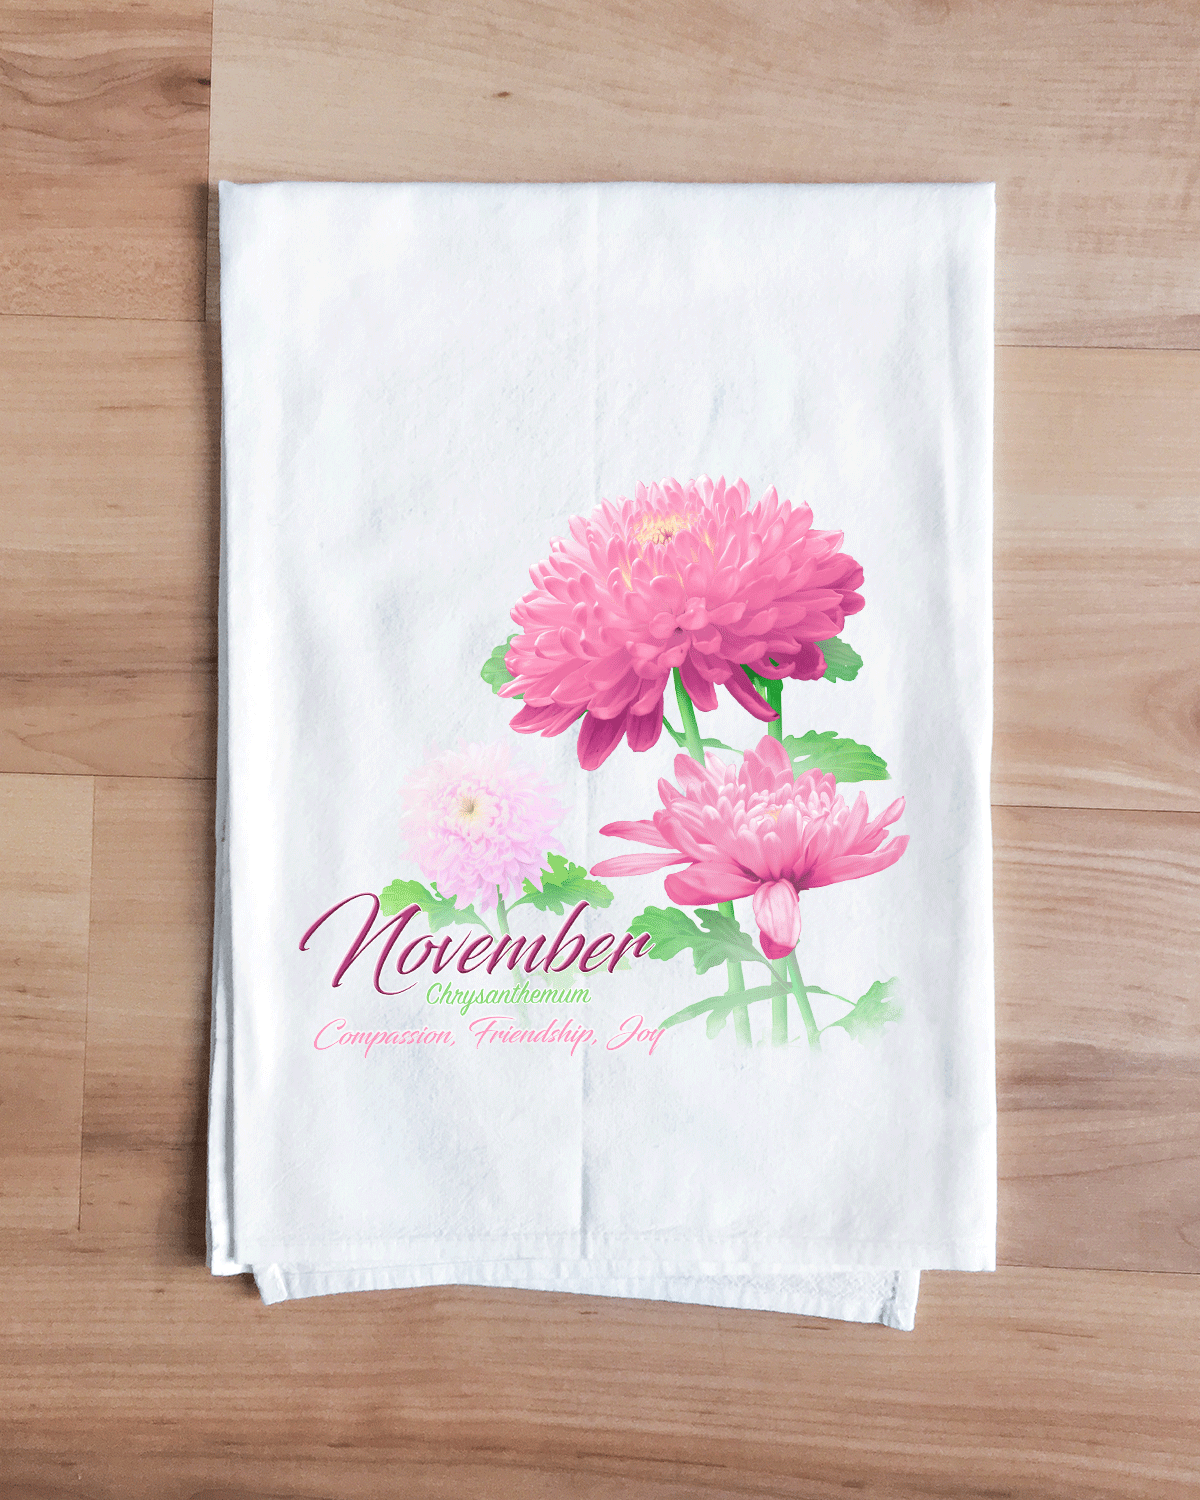 Chrysanthemum - November Flower Towel